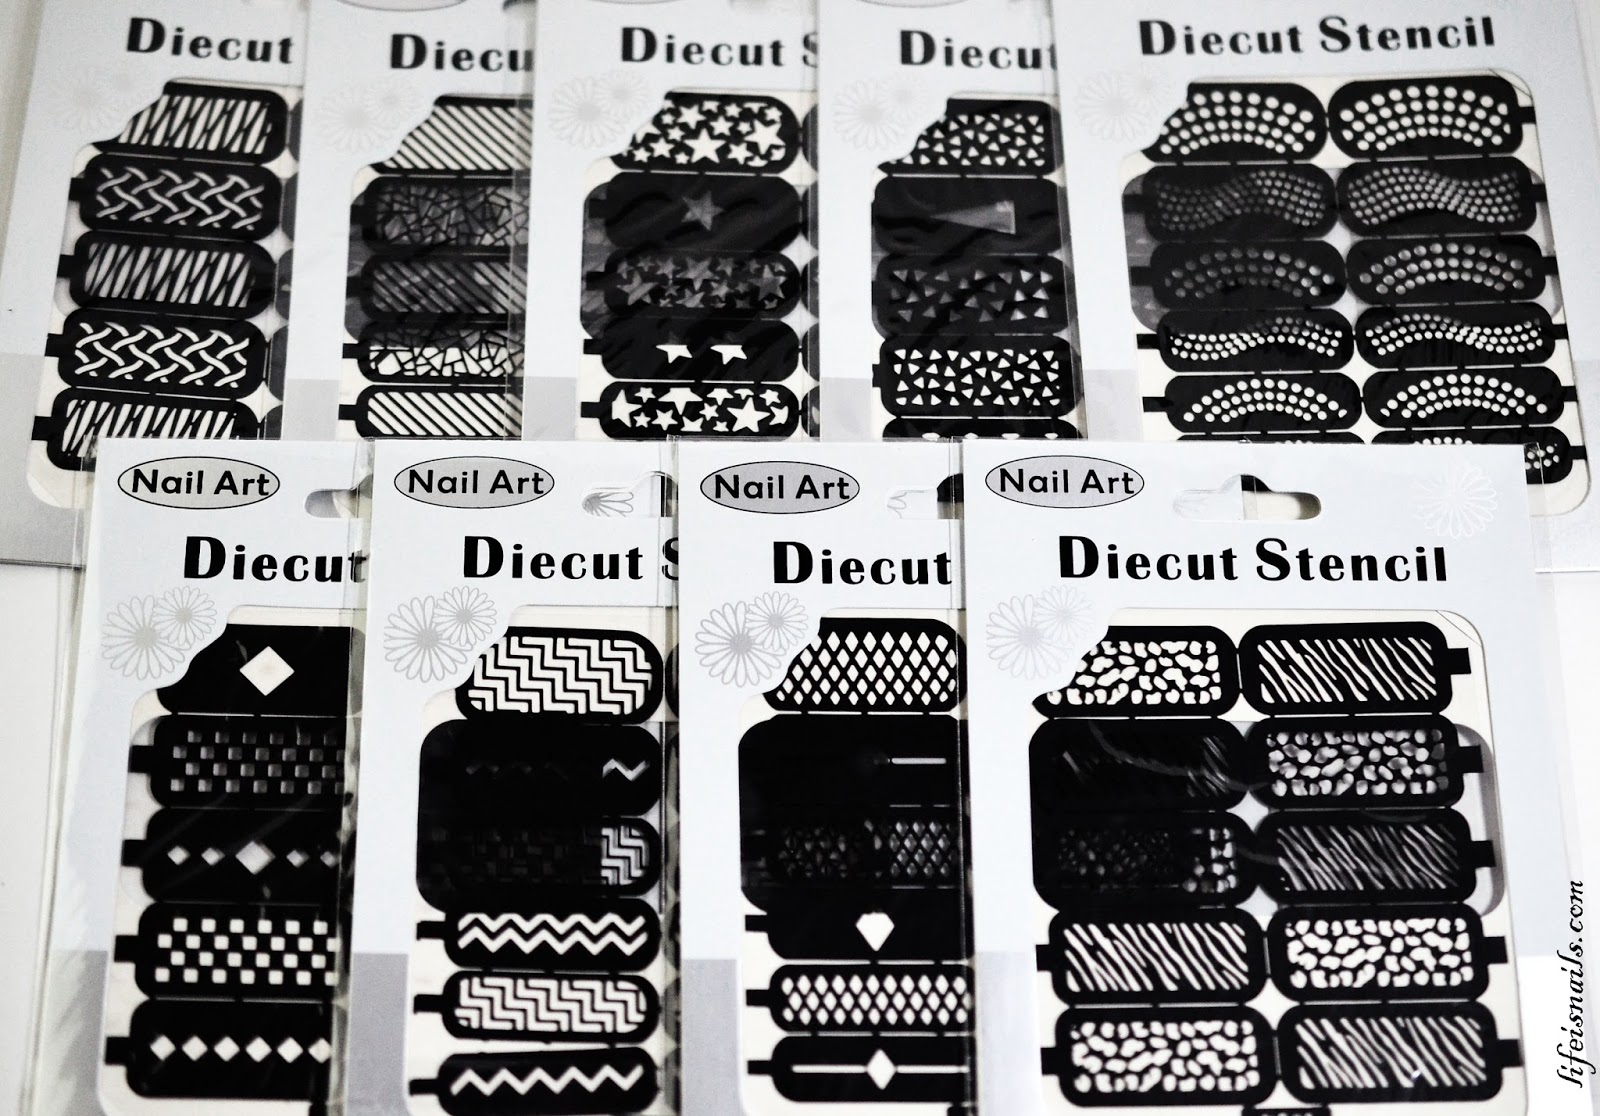 Bundle monster nail art stencils review nail art lifeisnails these nail art stencils are sold in a 9 sheetsset which costs 1299 you get two options to choose from that is geometric shapes or sunny weather fun prinsesfo Choice Image